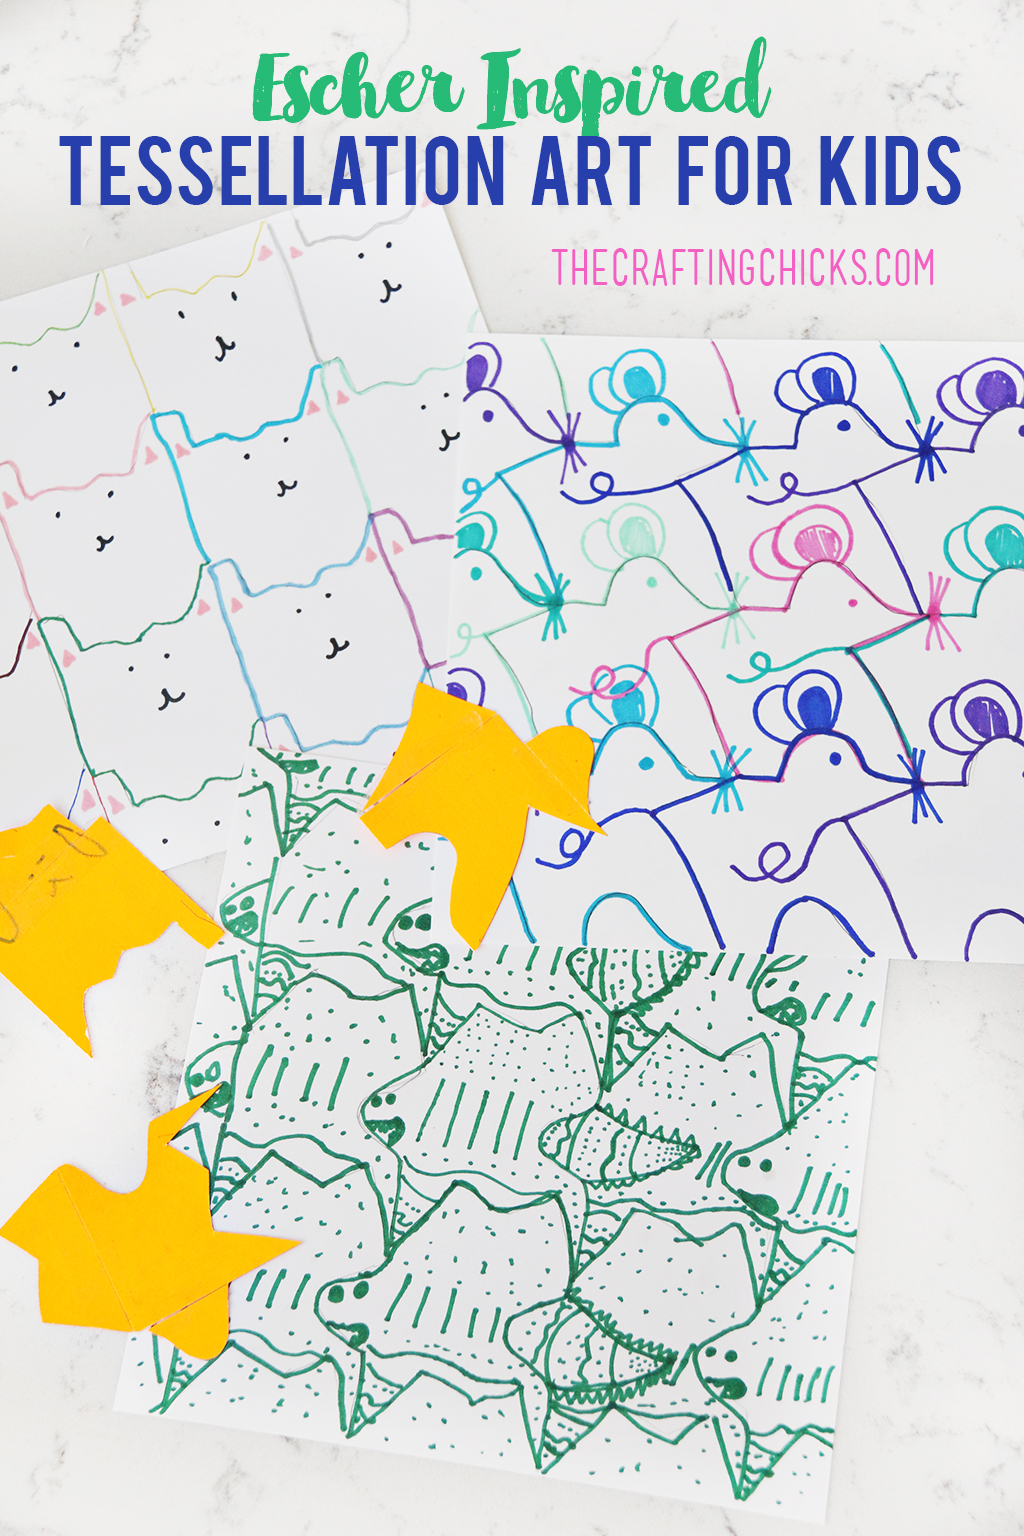 Escher Inspired Tessellation Art for Kids